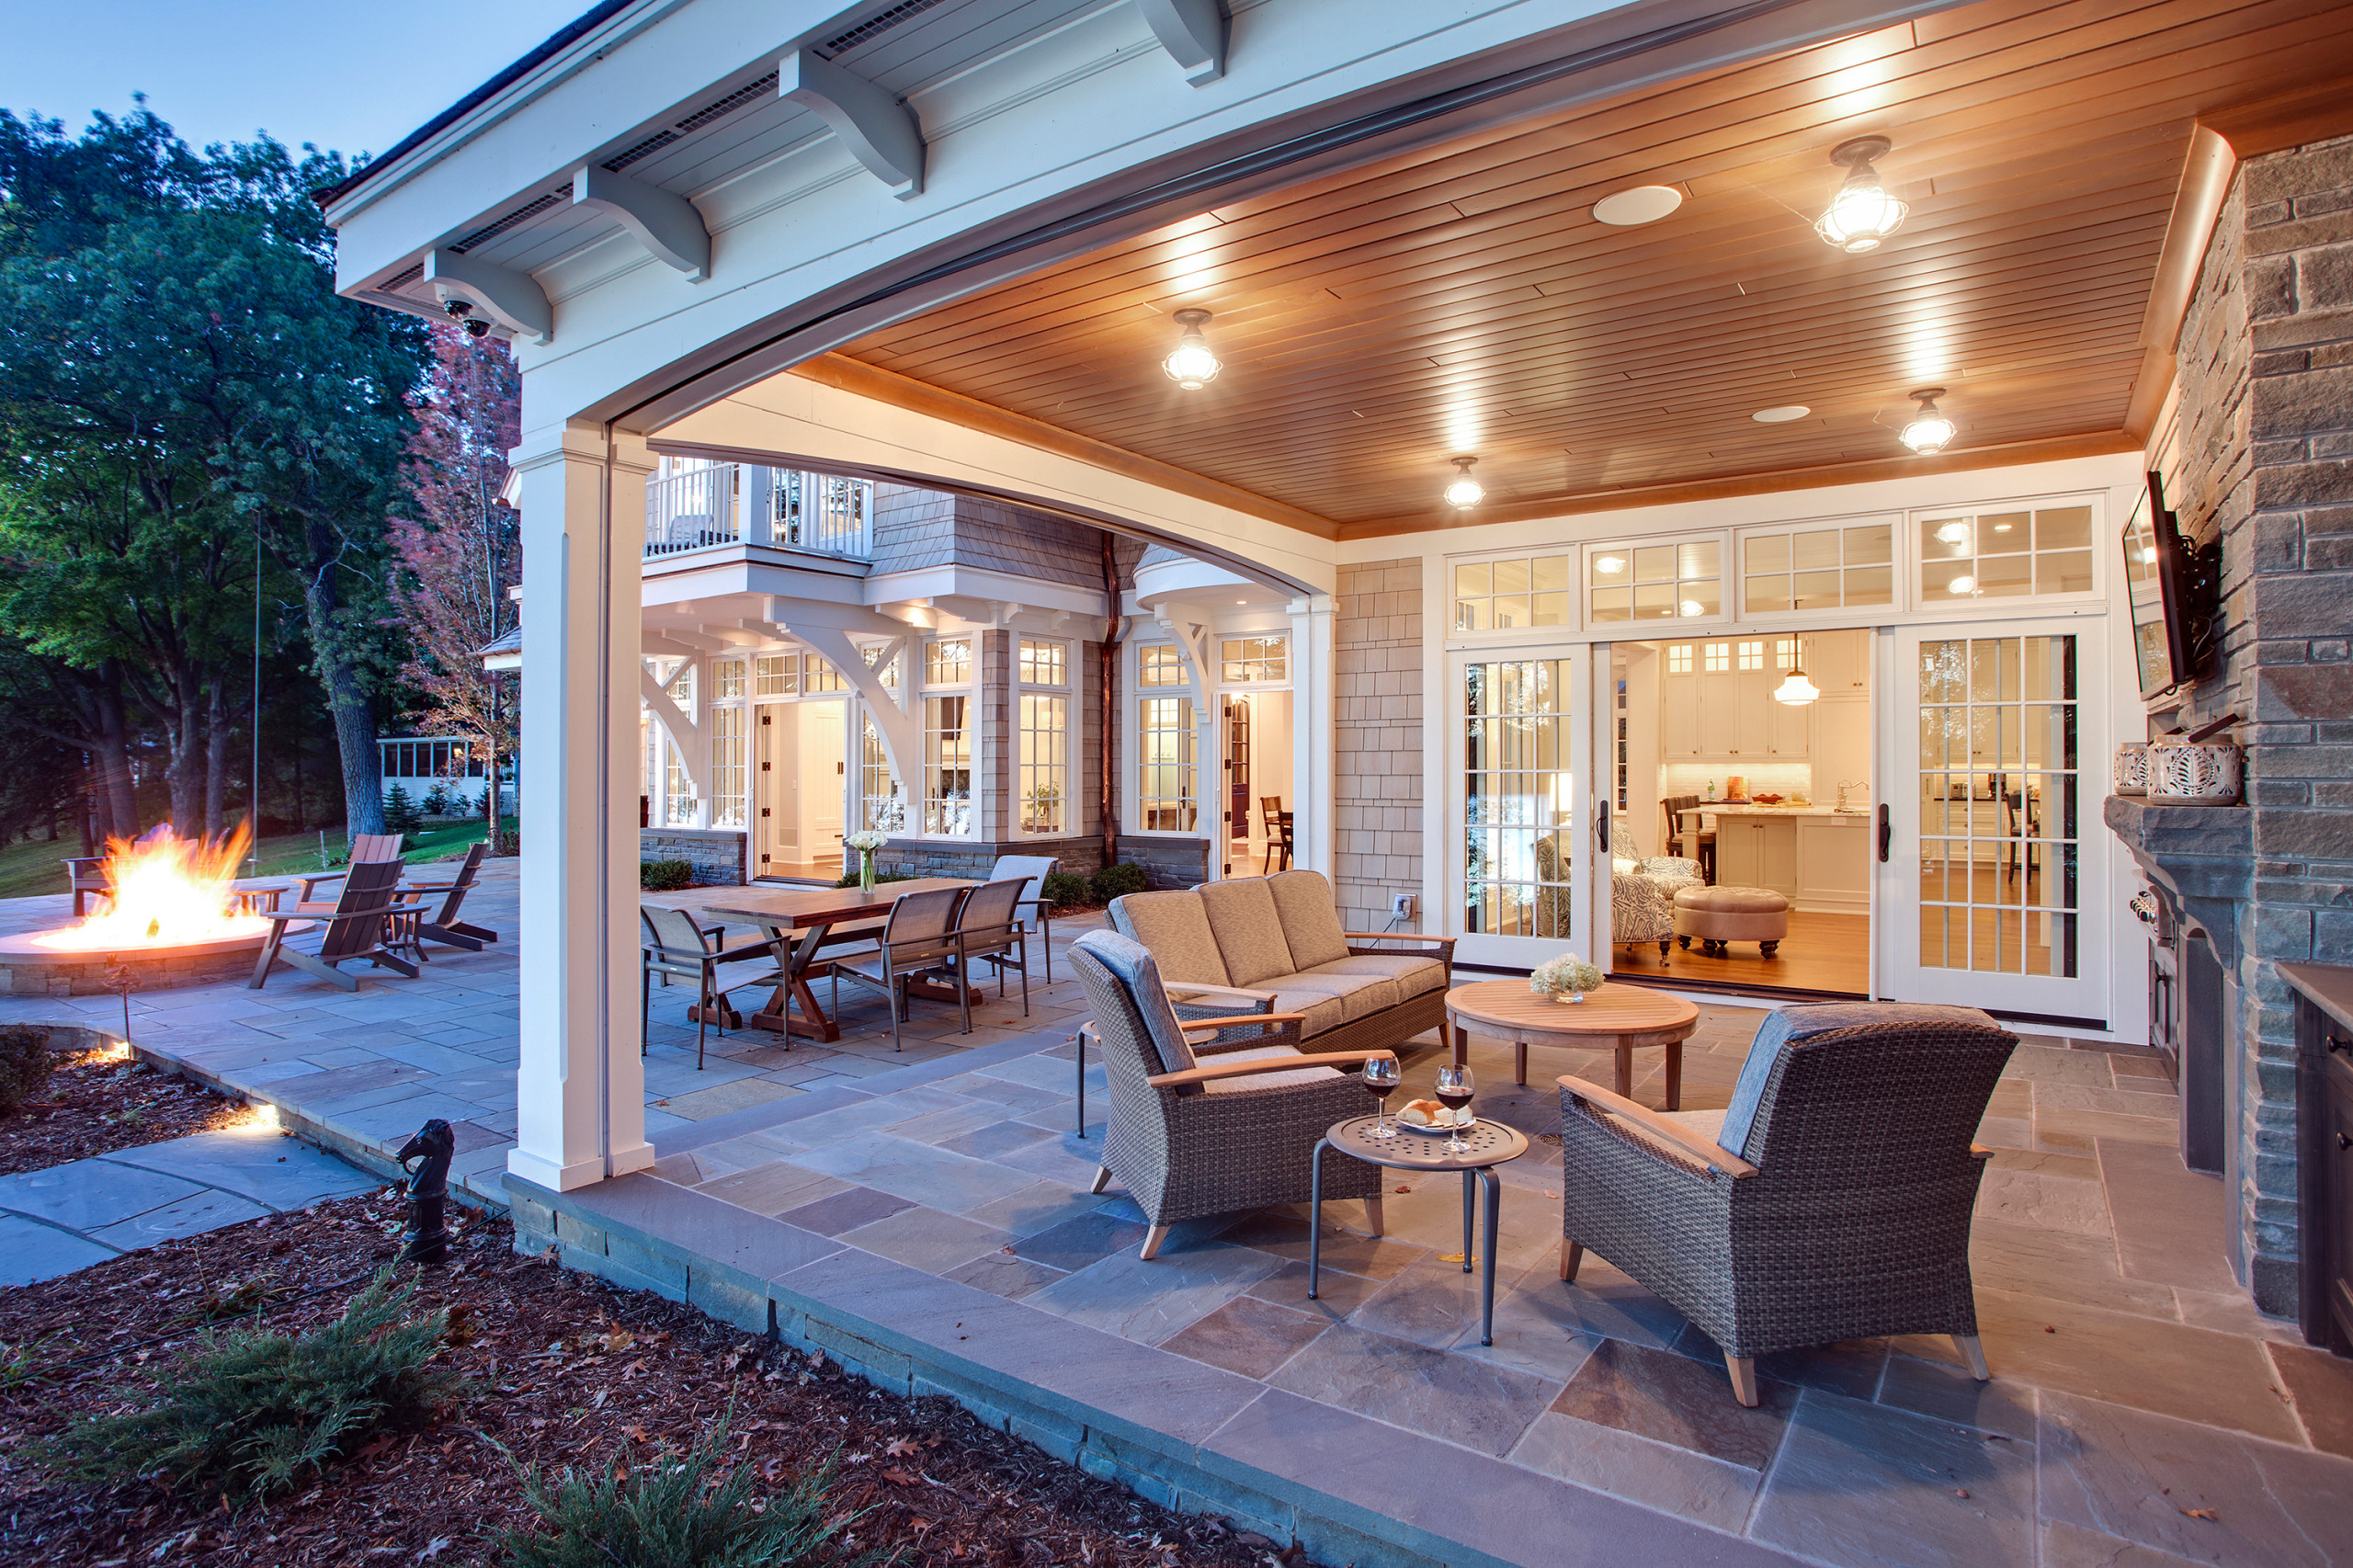 18 Beautiful Screened In Porch Pictures